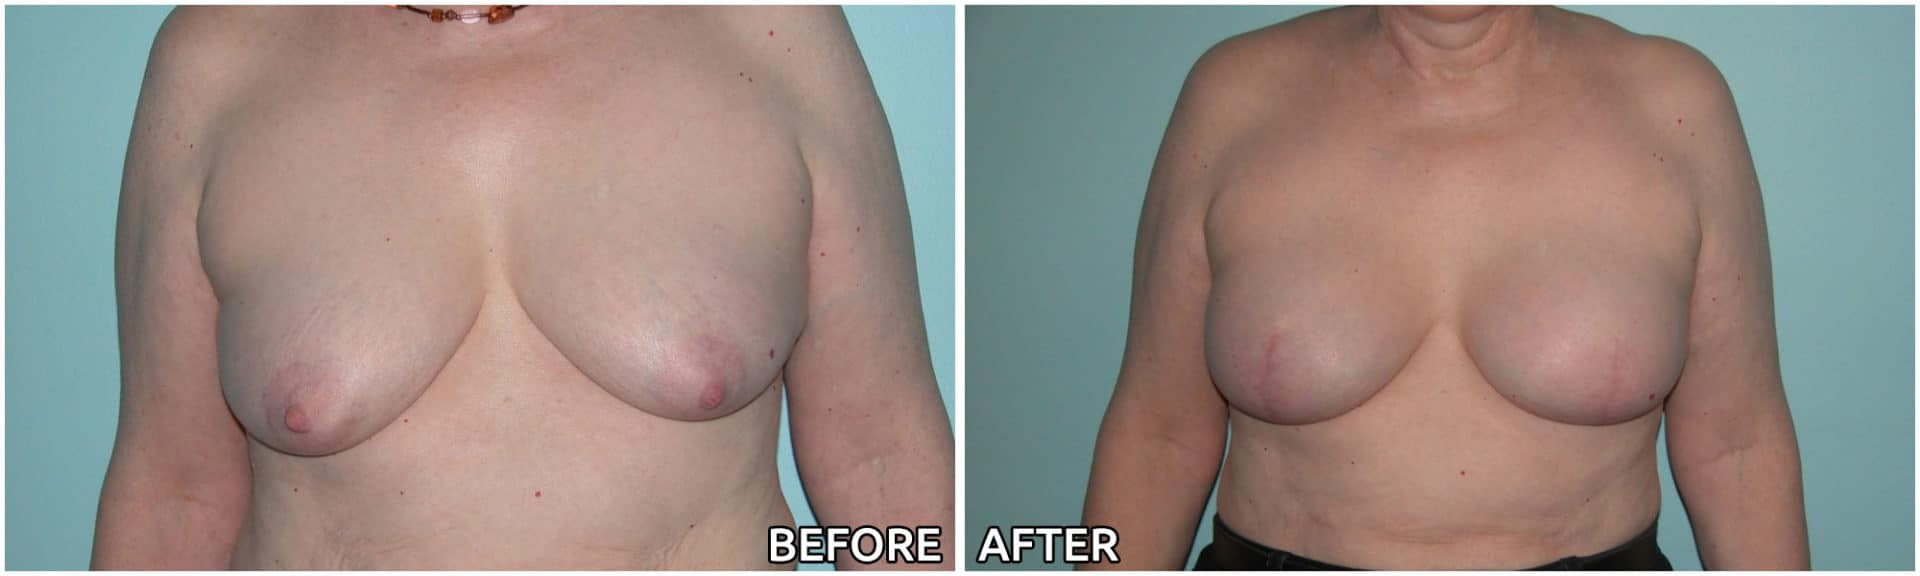 breast-reconstruction5